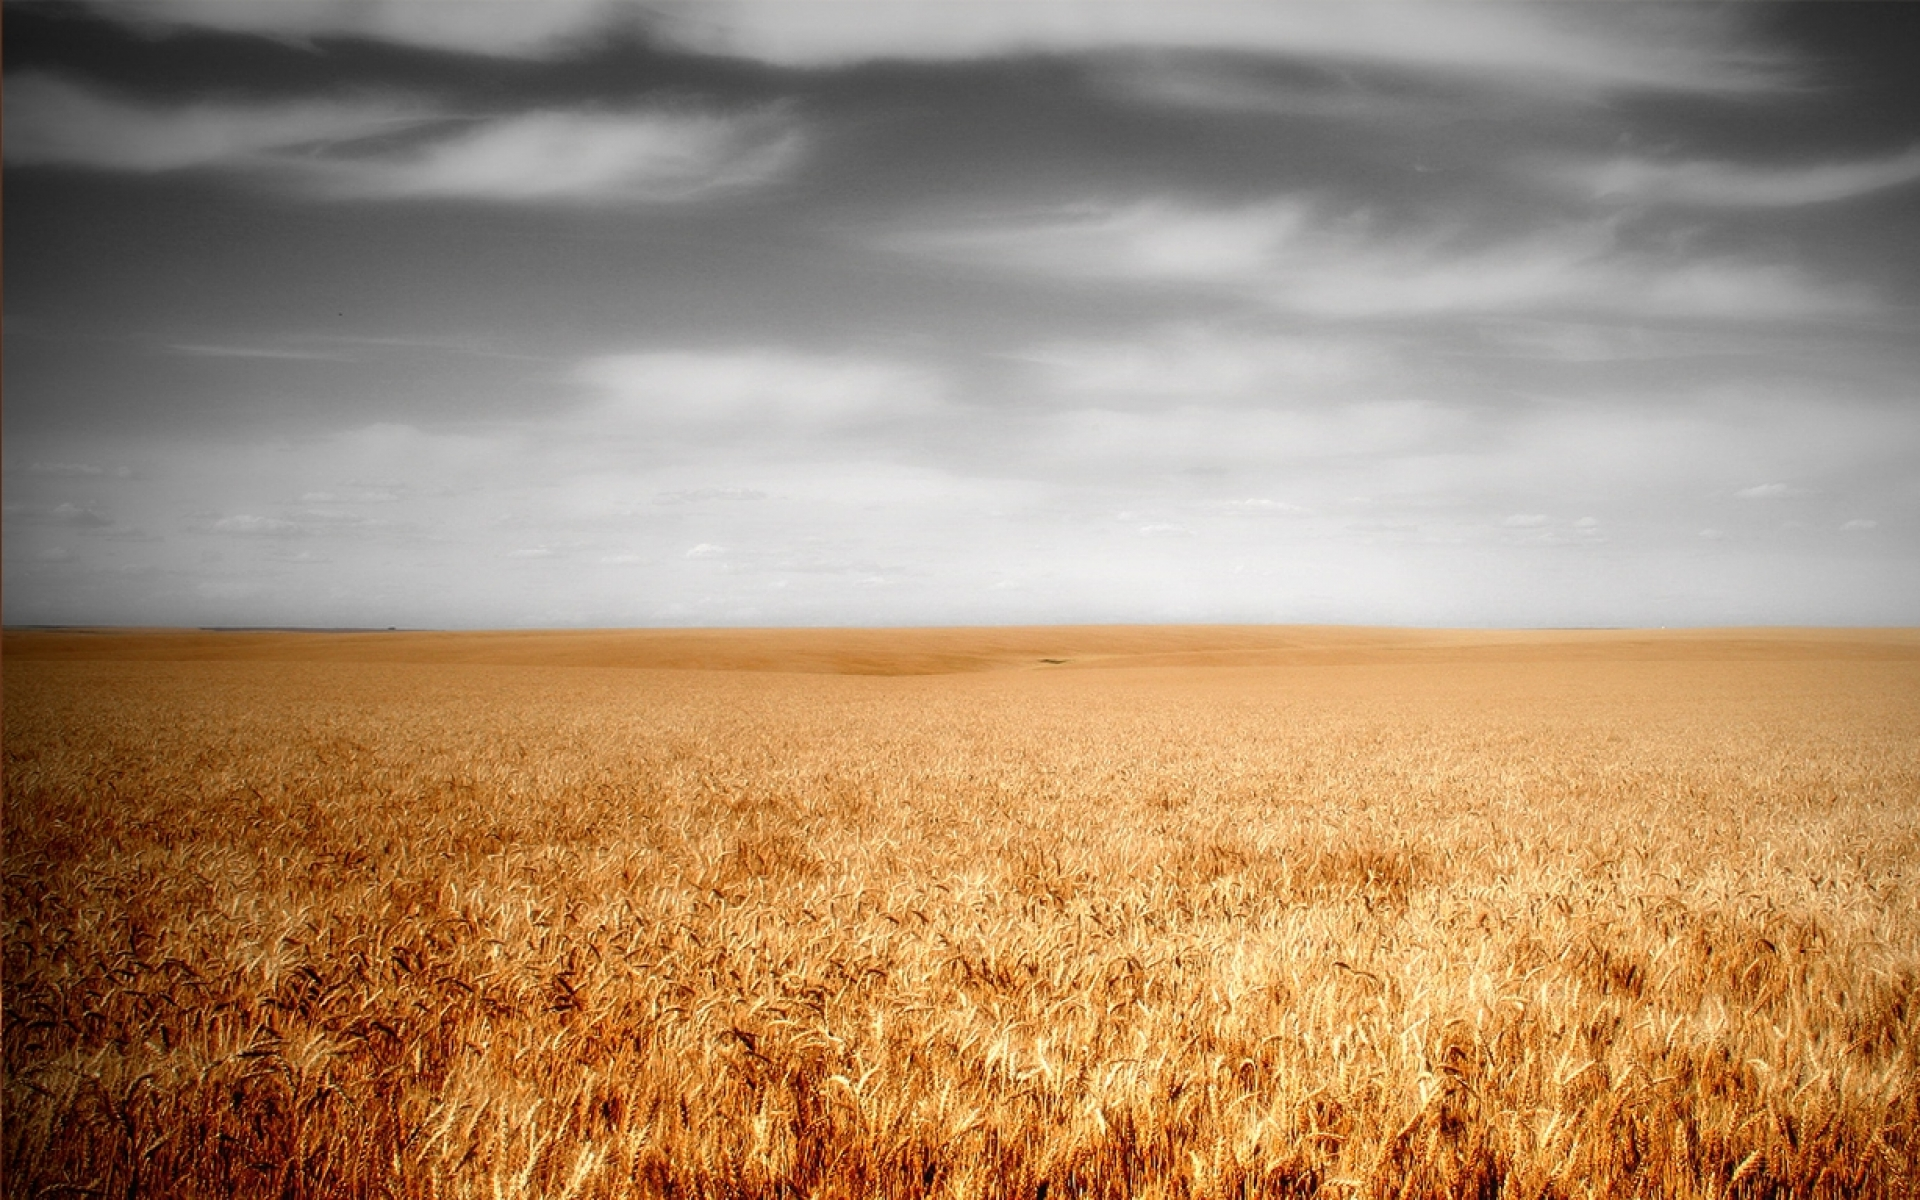 Fall Mountains Iphone Wallpaper Wheat Field Amp Gray Sky Wallpapers Wheat Field Amp Gray Sky